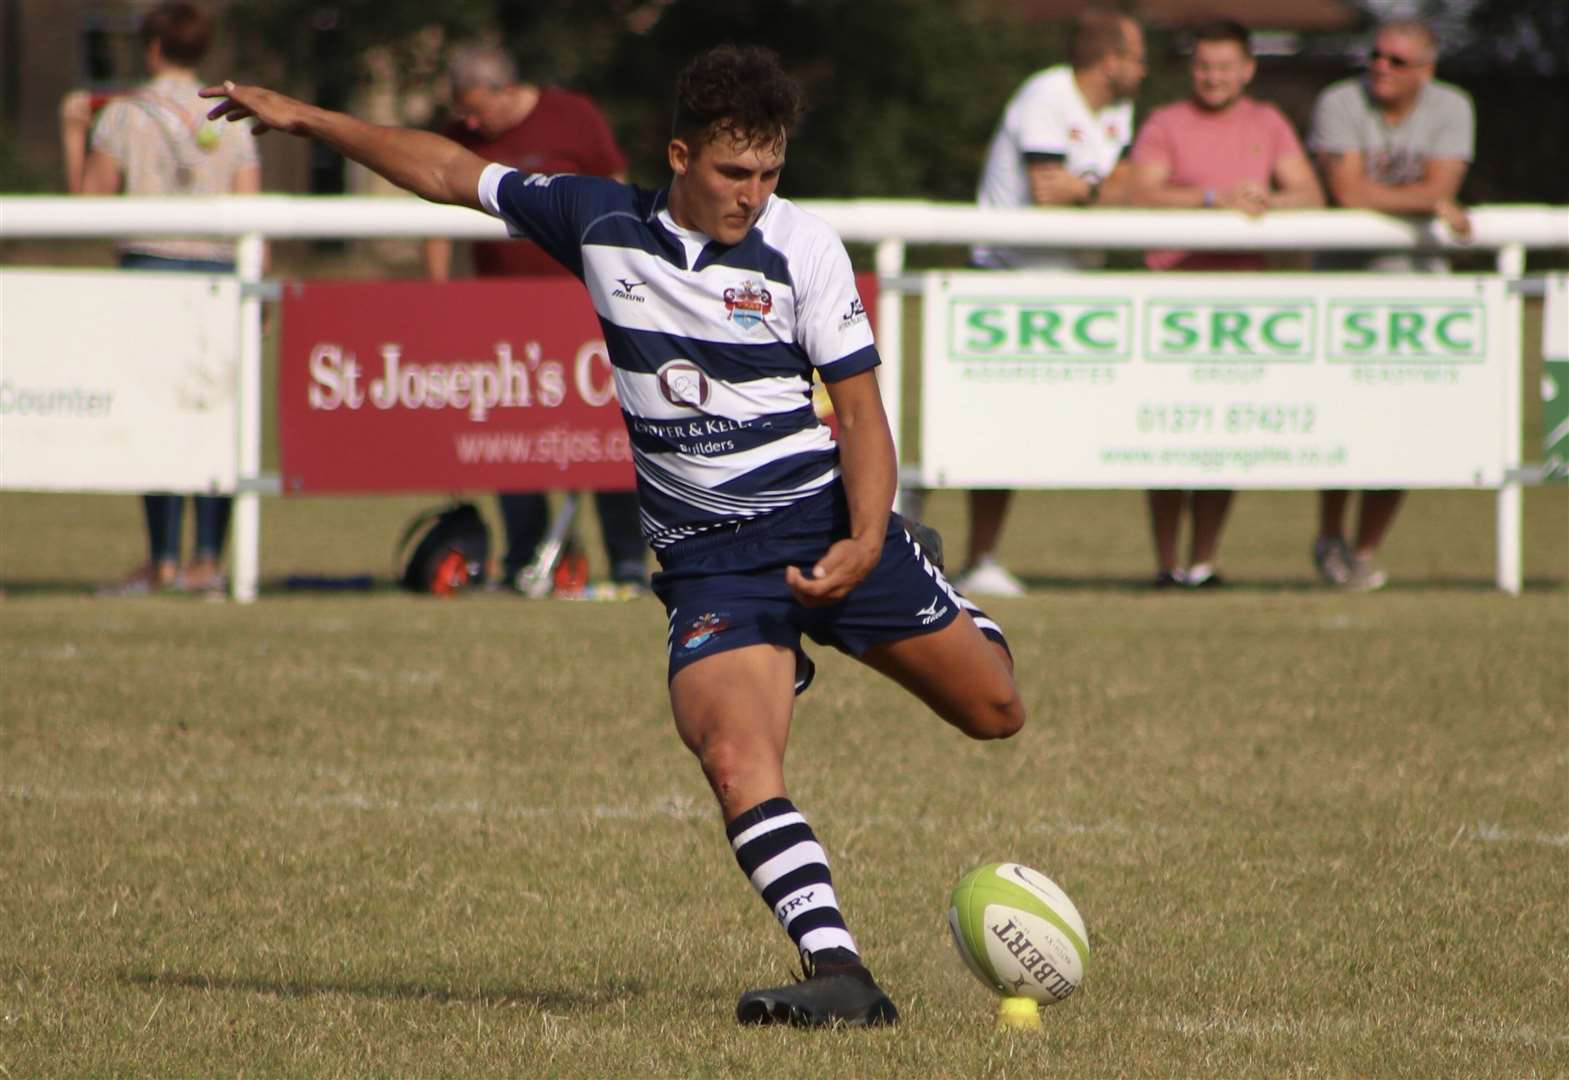 MATCH REPORT: Sudbury go down to narrow defeat at Colchester